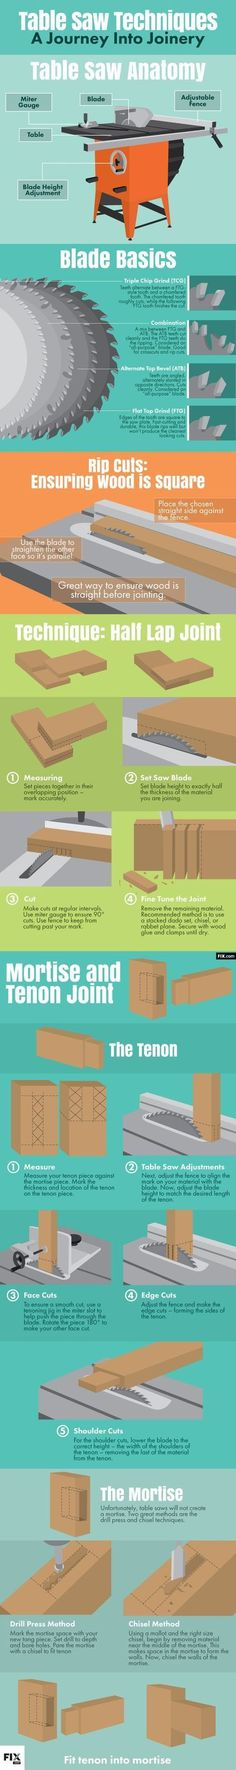 Joining wood can be simple on a table saw. Create seamless, beautiful joints for all your construction projects.: